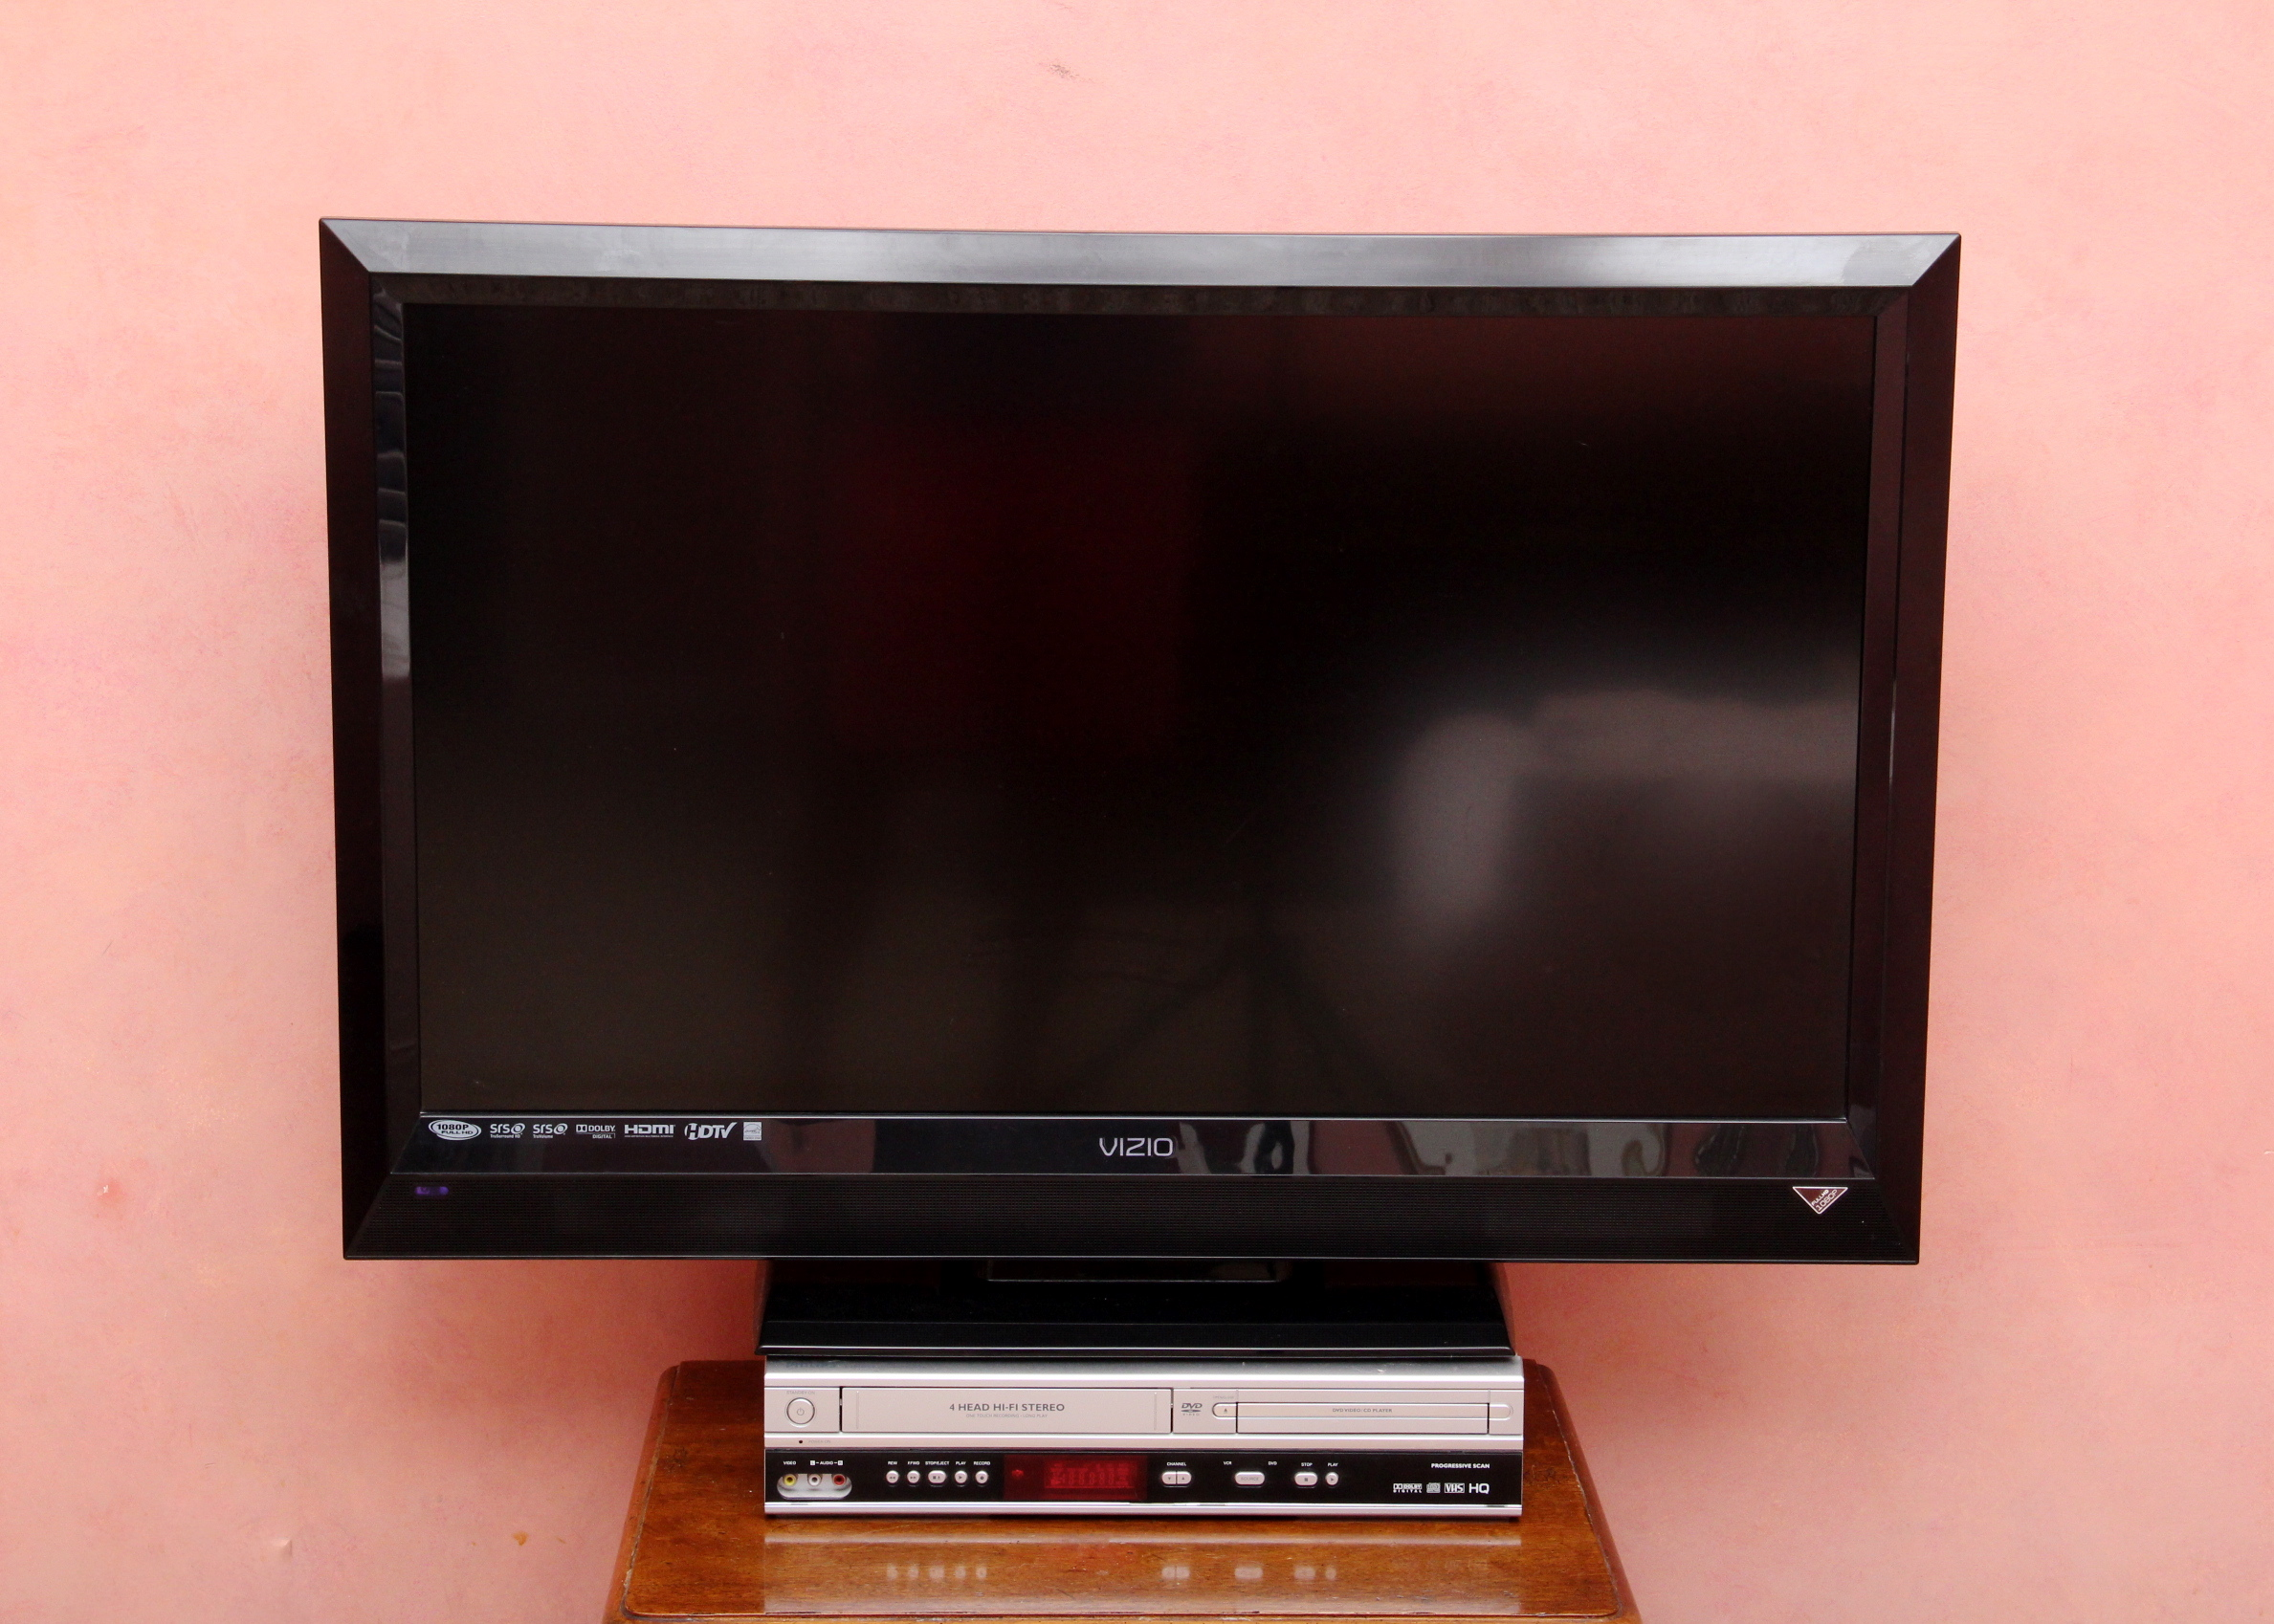 Vizio Tv With Philips Dvd  Vcr Player   Ebth